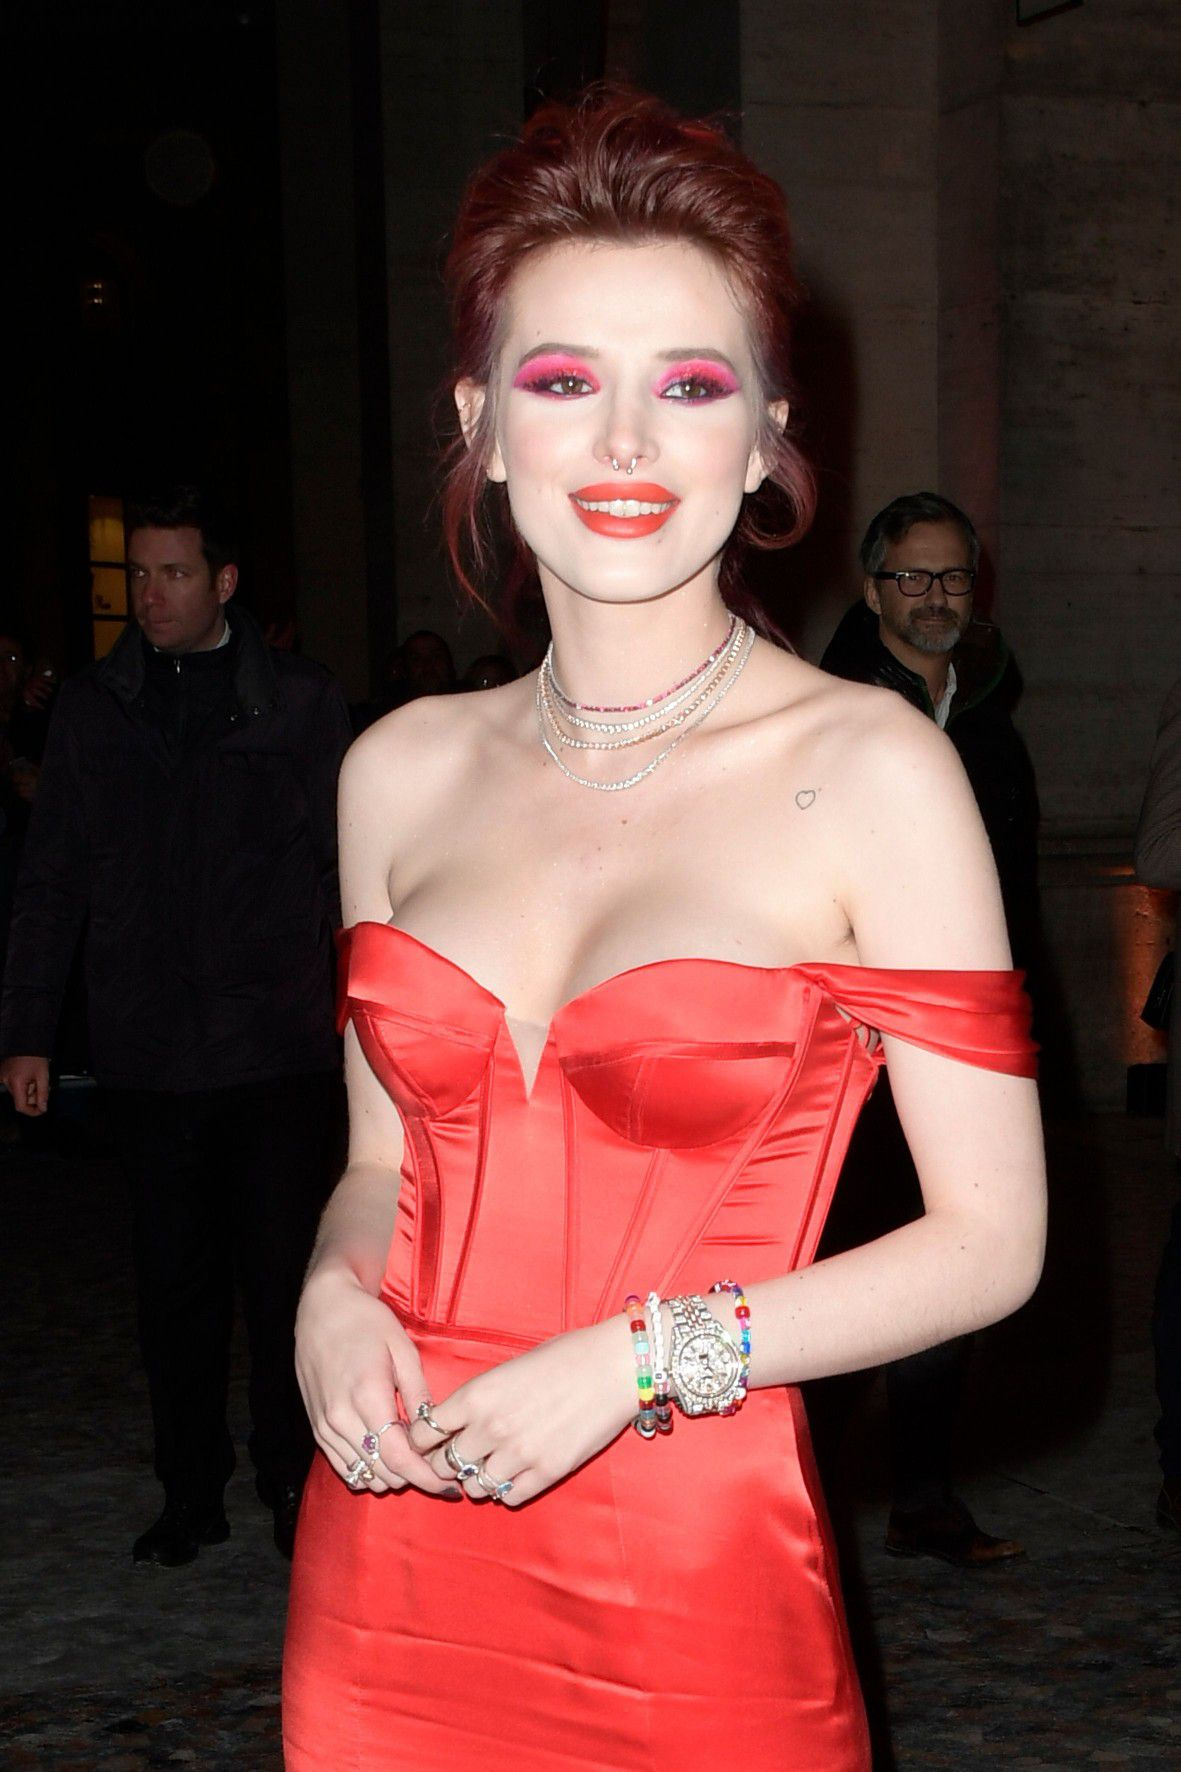 bella-thorne-deep-cleavage-at-midnight-run-premiere-in-rome-3276